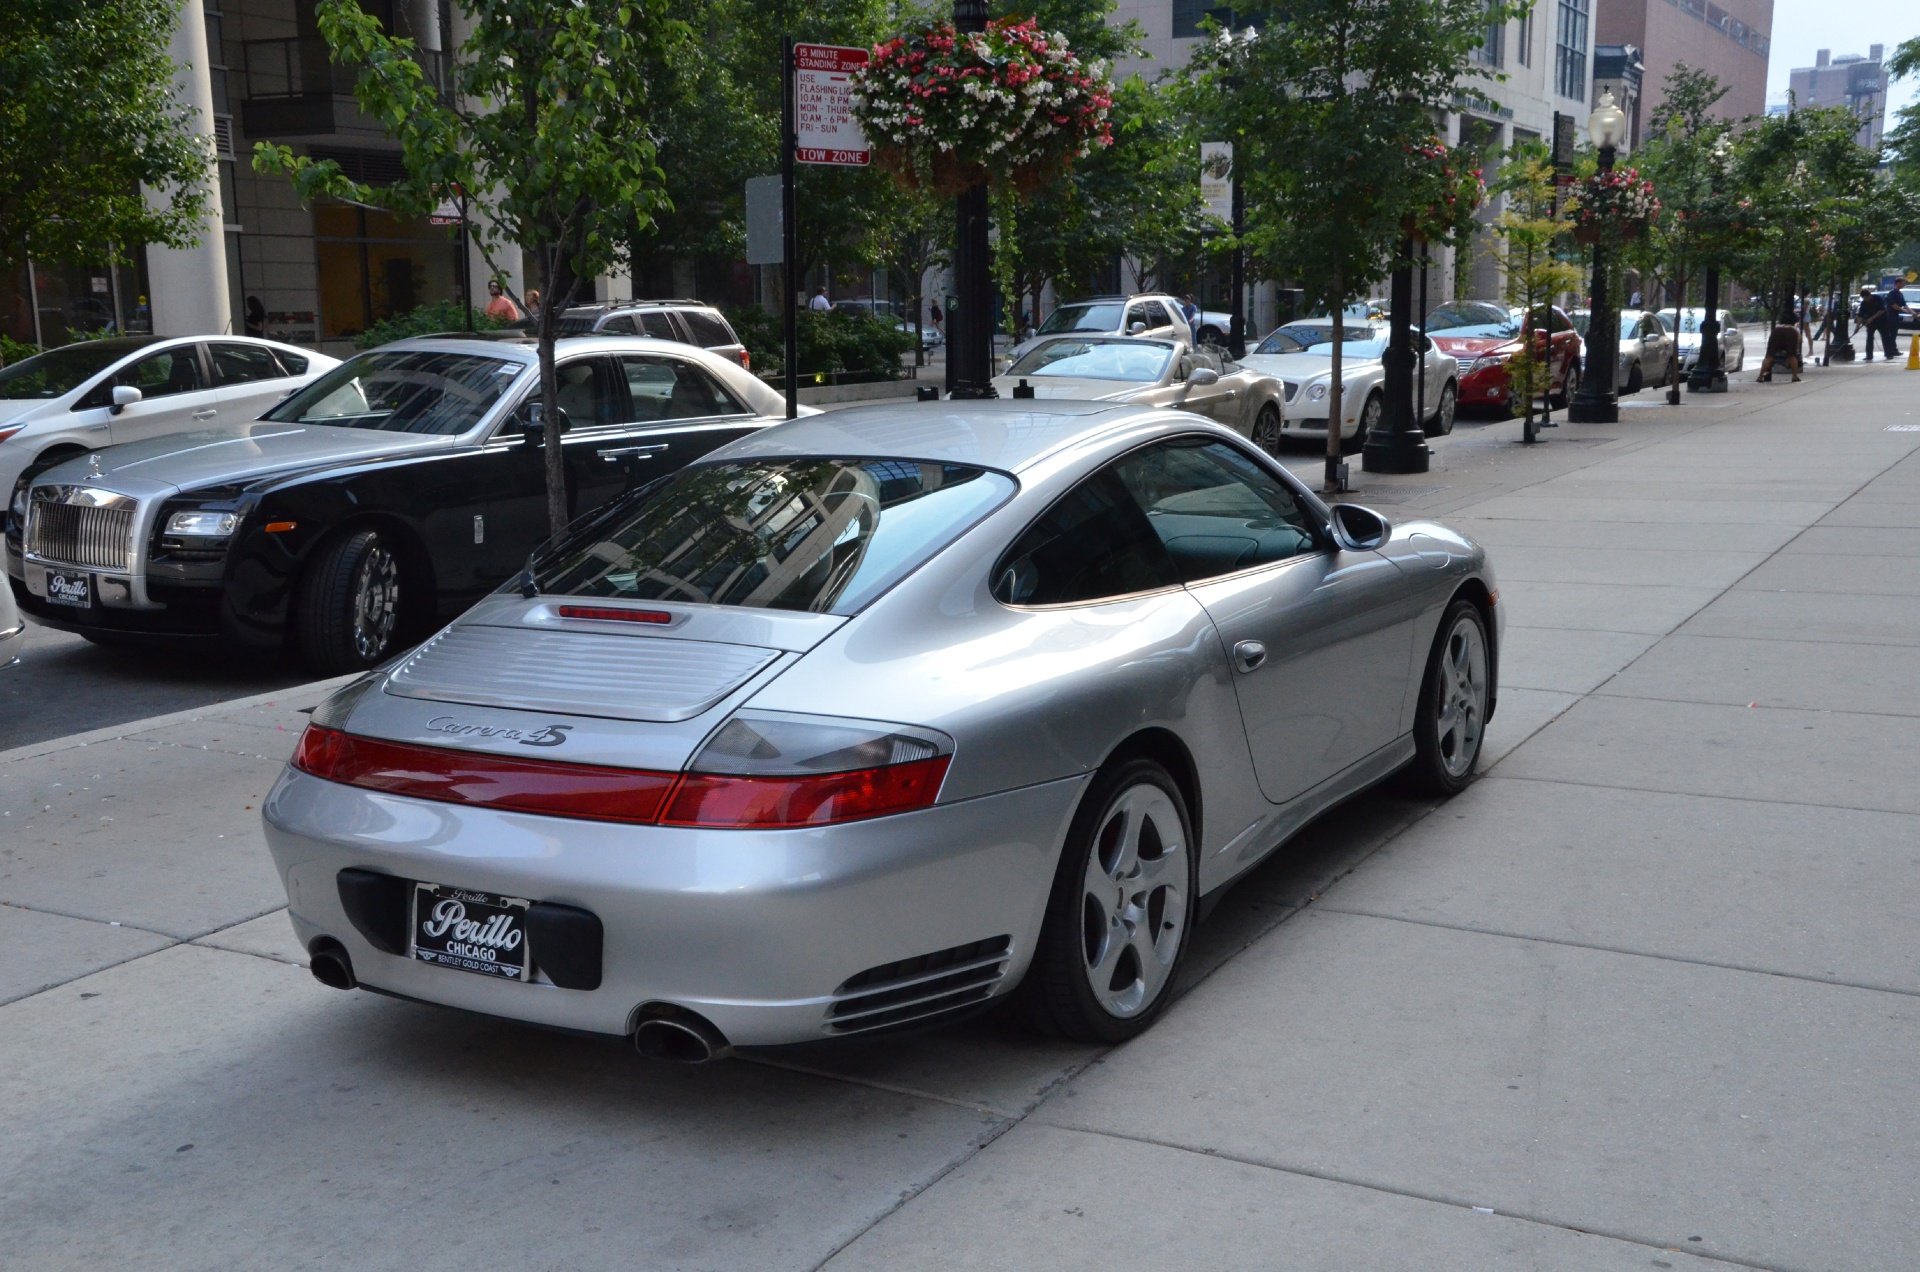 2003 porsche 911 carrera 4s stock gc1208 for sale near chicago il il porsche dealer. Black Bedroom Furniture Sets. Home Design Ideas